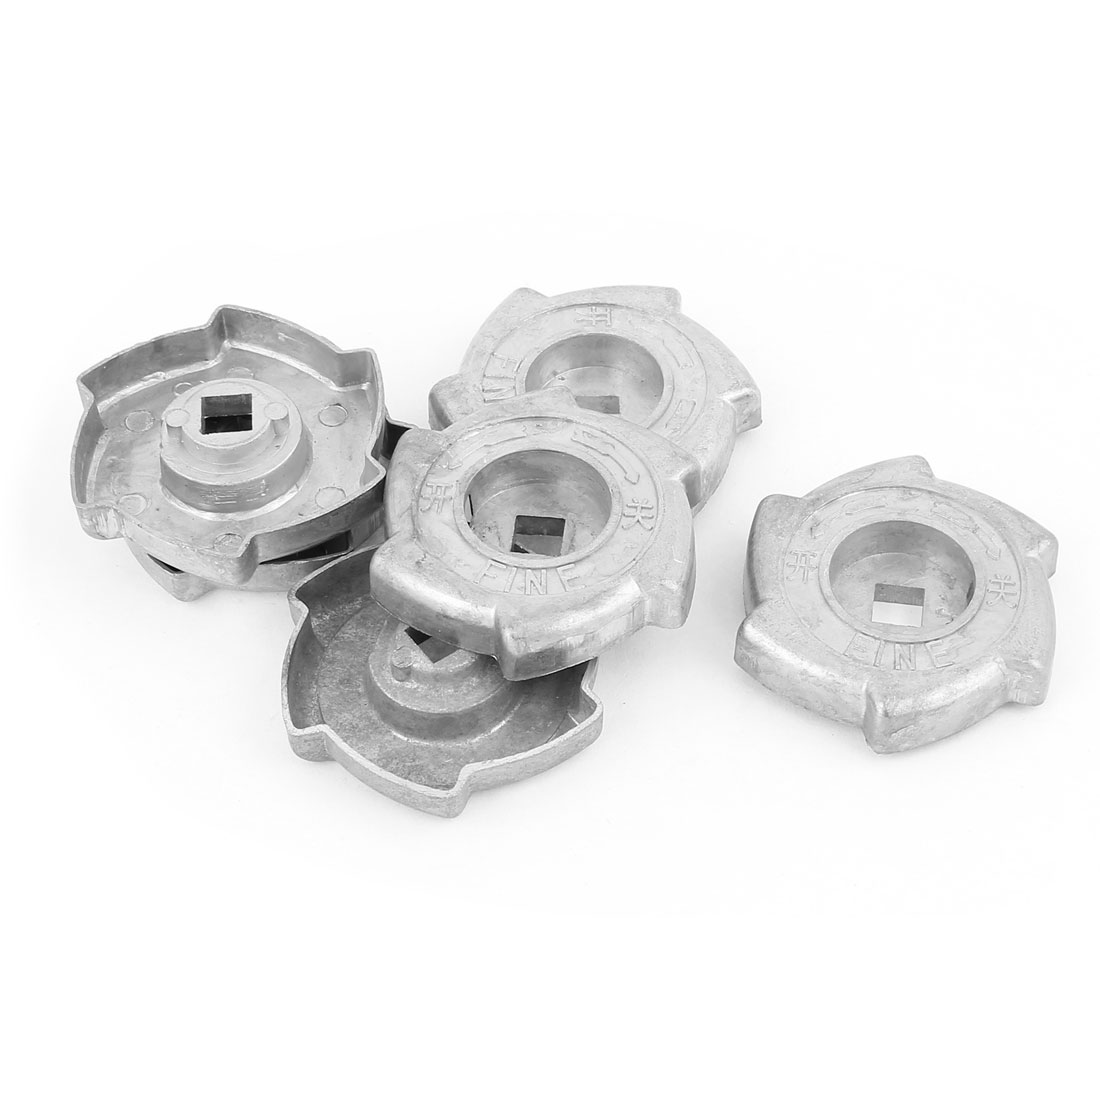 Family Handy Tool Kitchen Gas Stove Range Cooktop Alloy Rotary Switch Knob Gray 6 Pcs